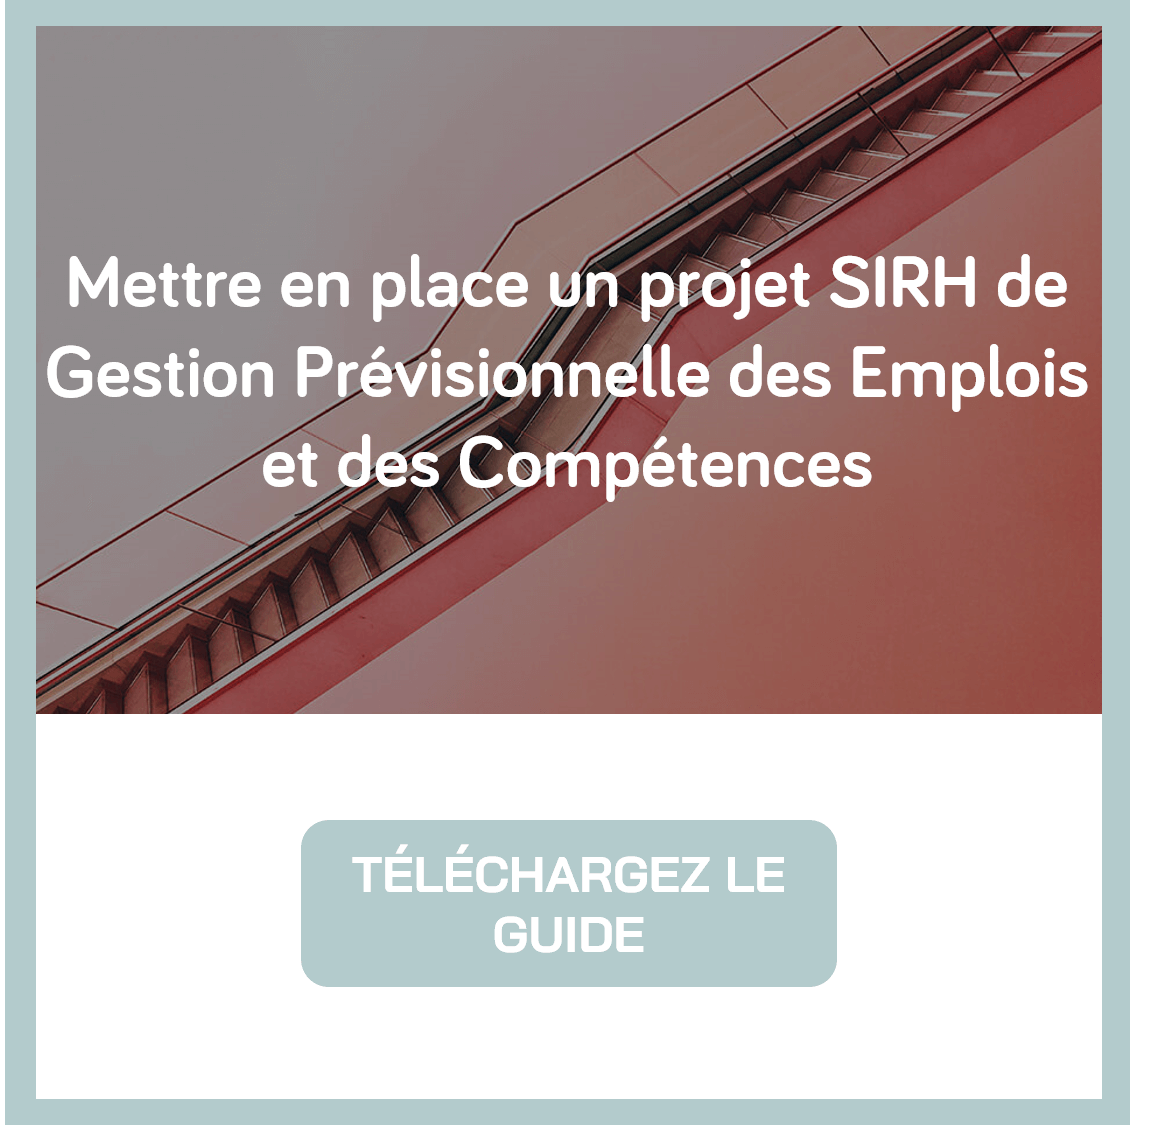 guide-gestion-previsionnelle-emplois-competences-sirh-rh